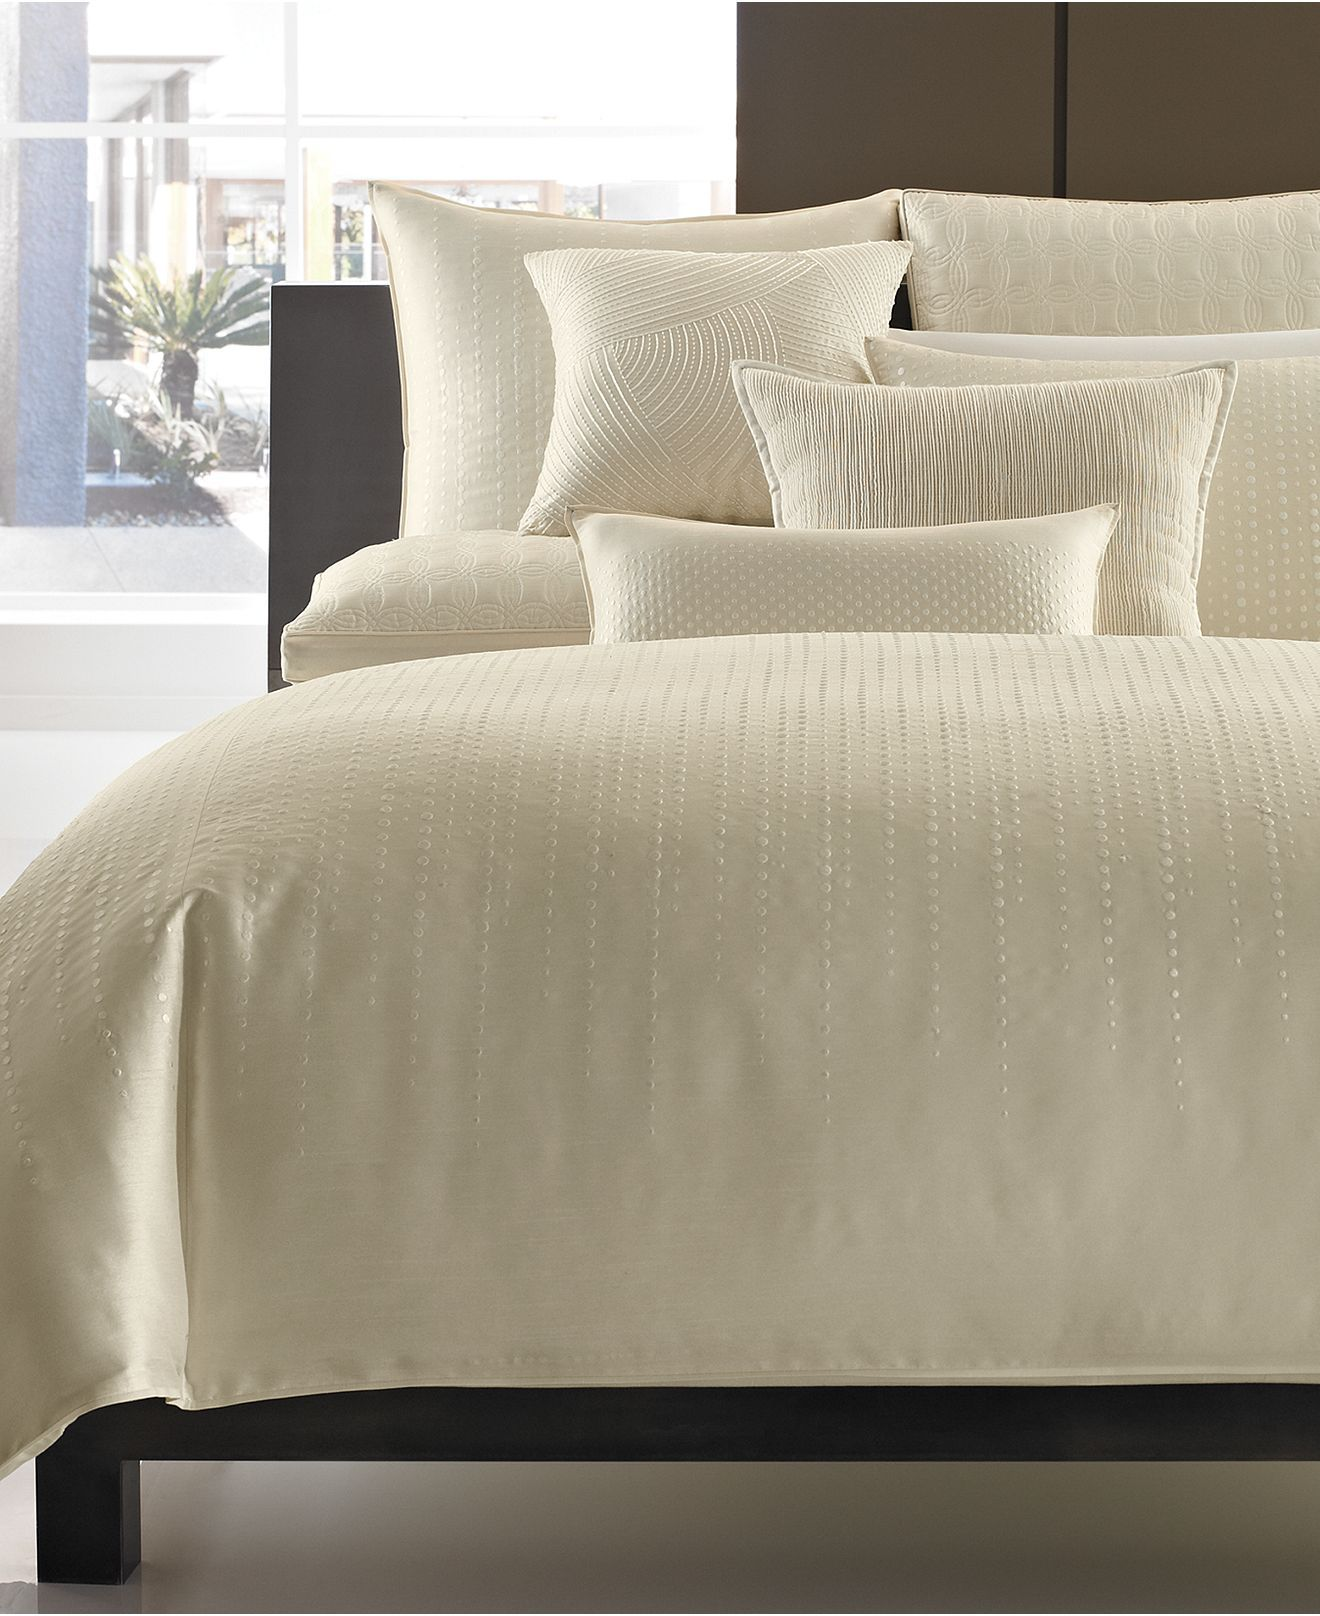 Hotel Collection Bedding Beads Collection Shop All Hotel